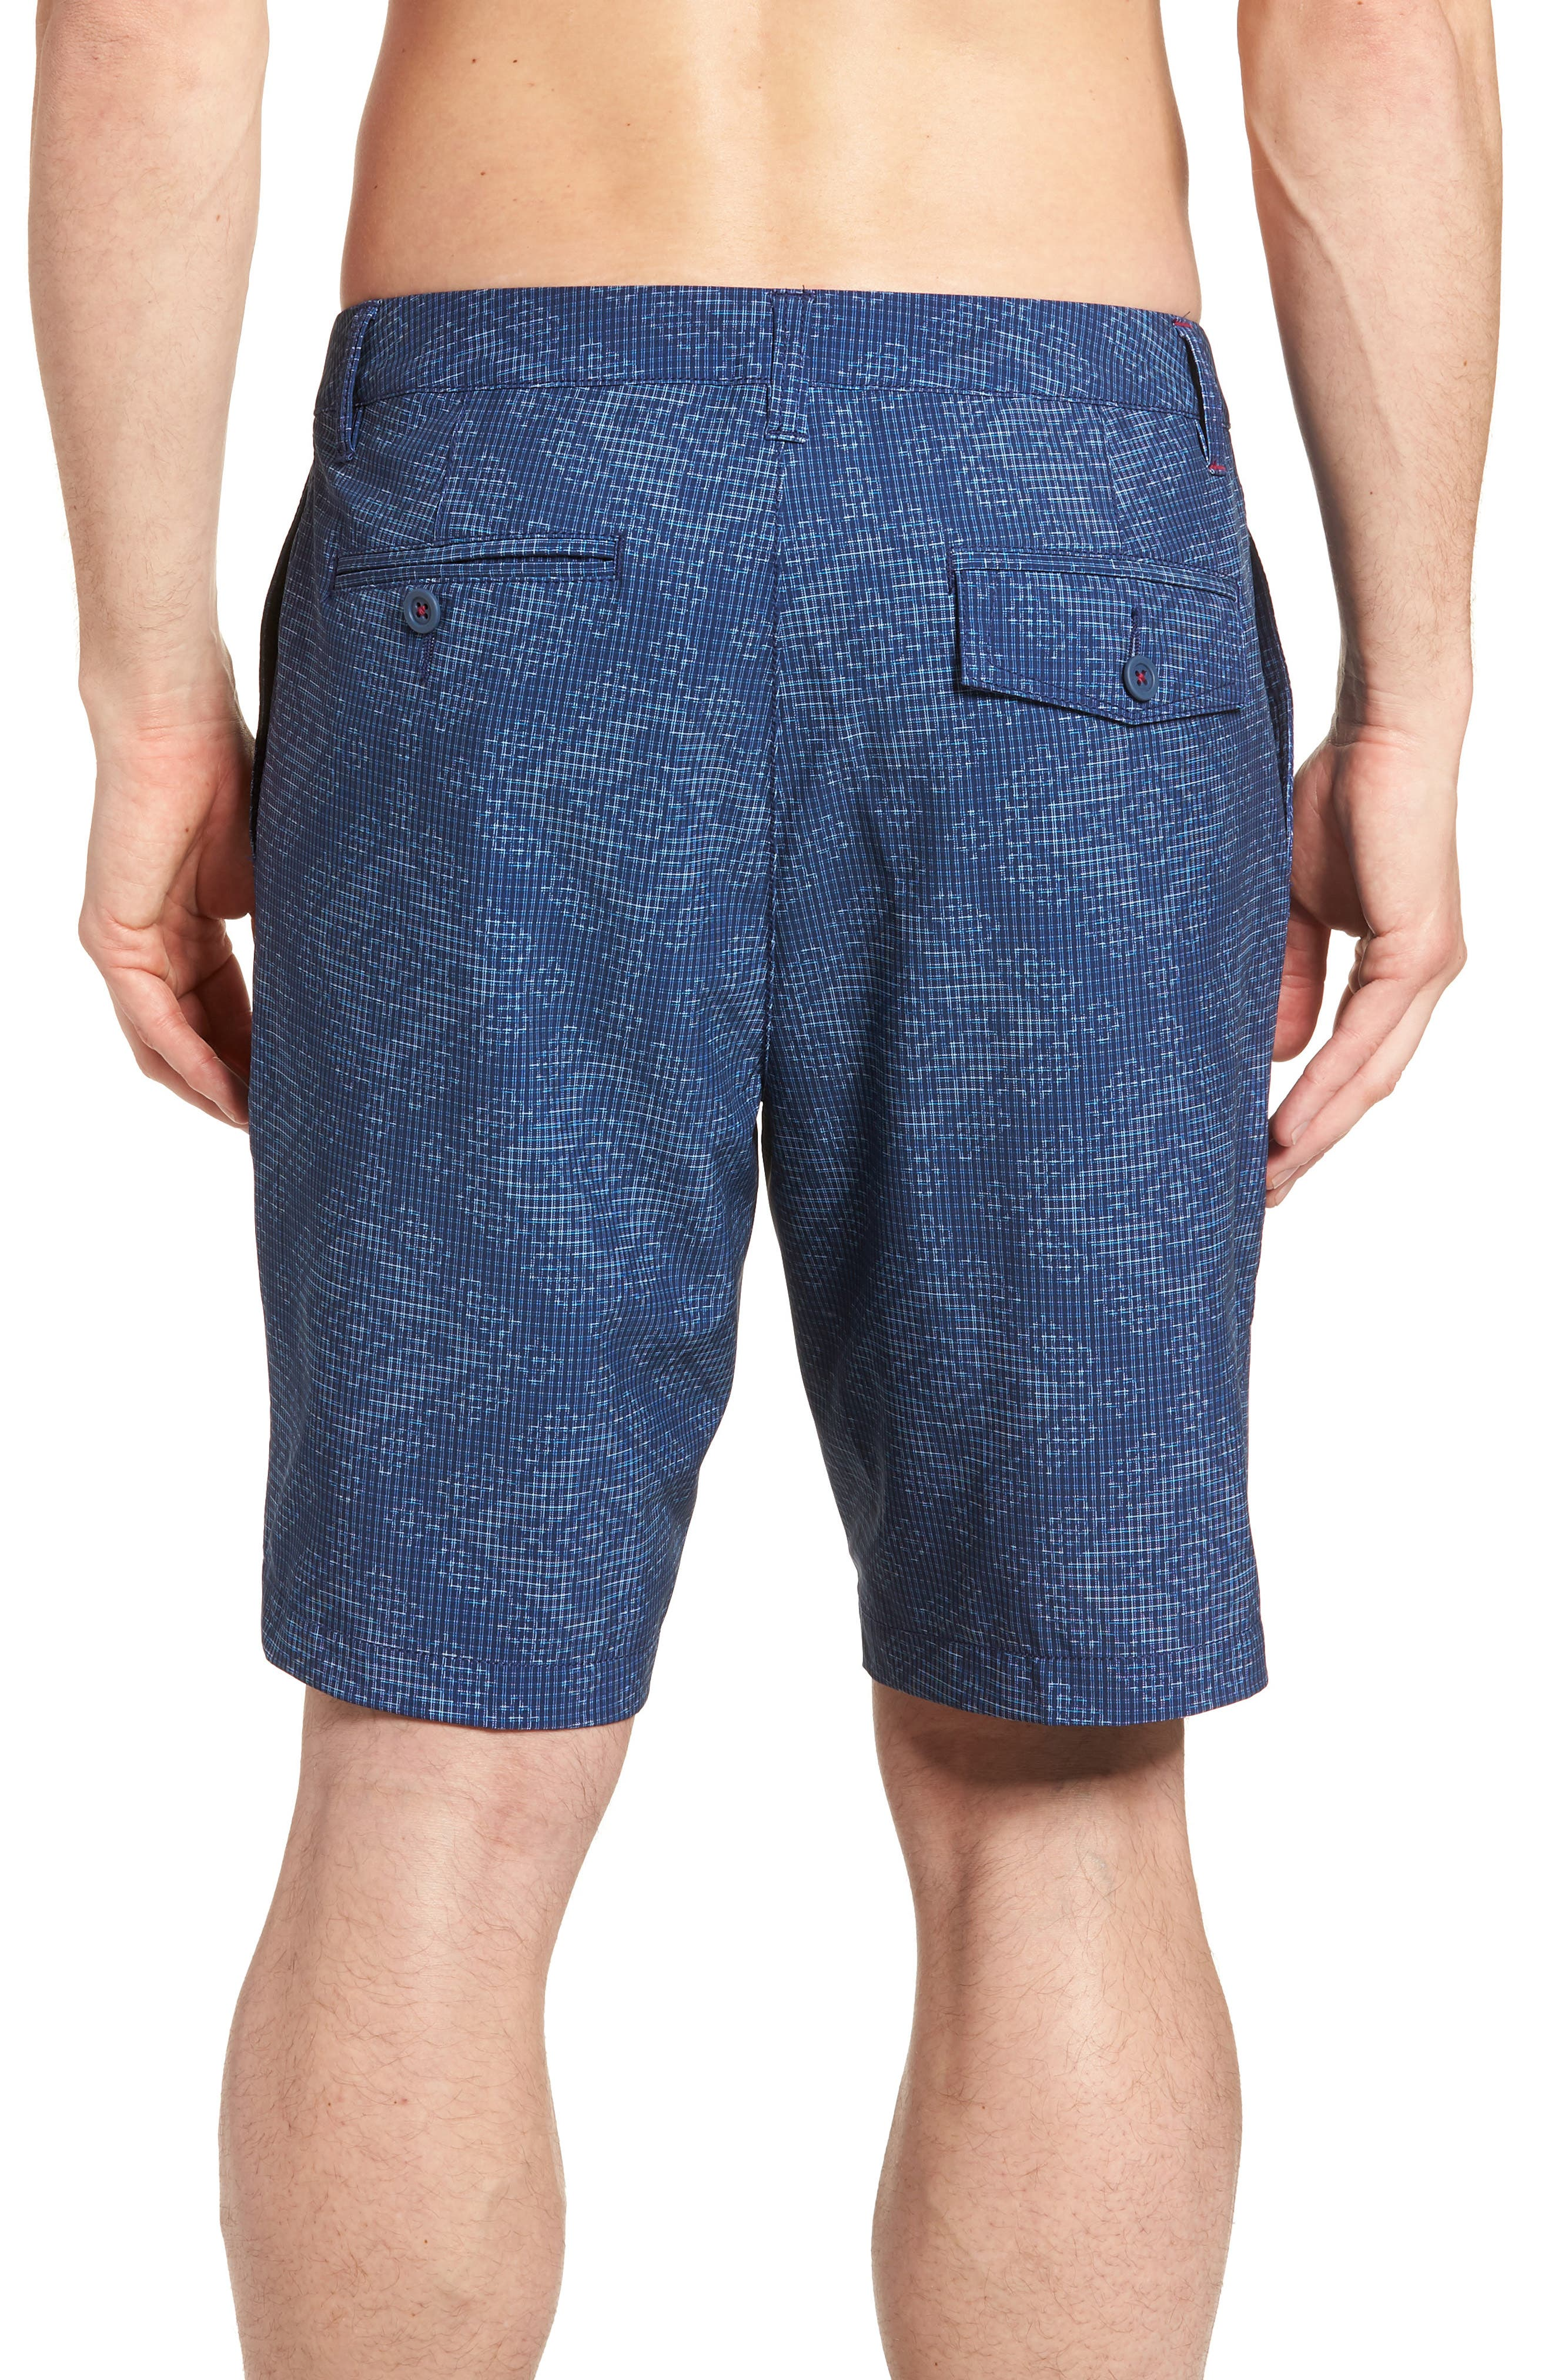 Cayman Geo de Mayo Swim Trunks,                             Alternate thumbnail 2, color,                             Throne Blue